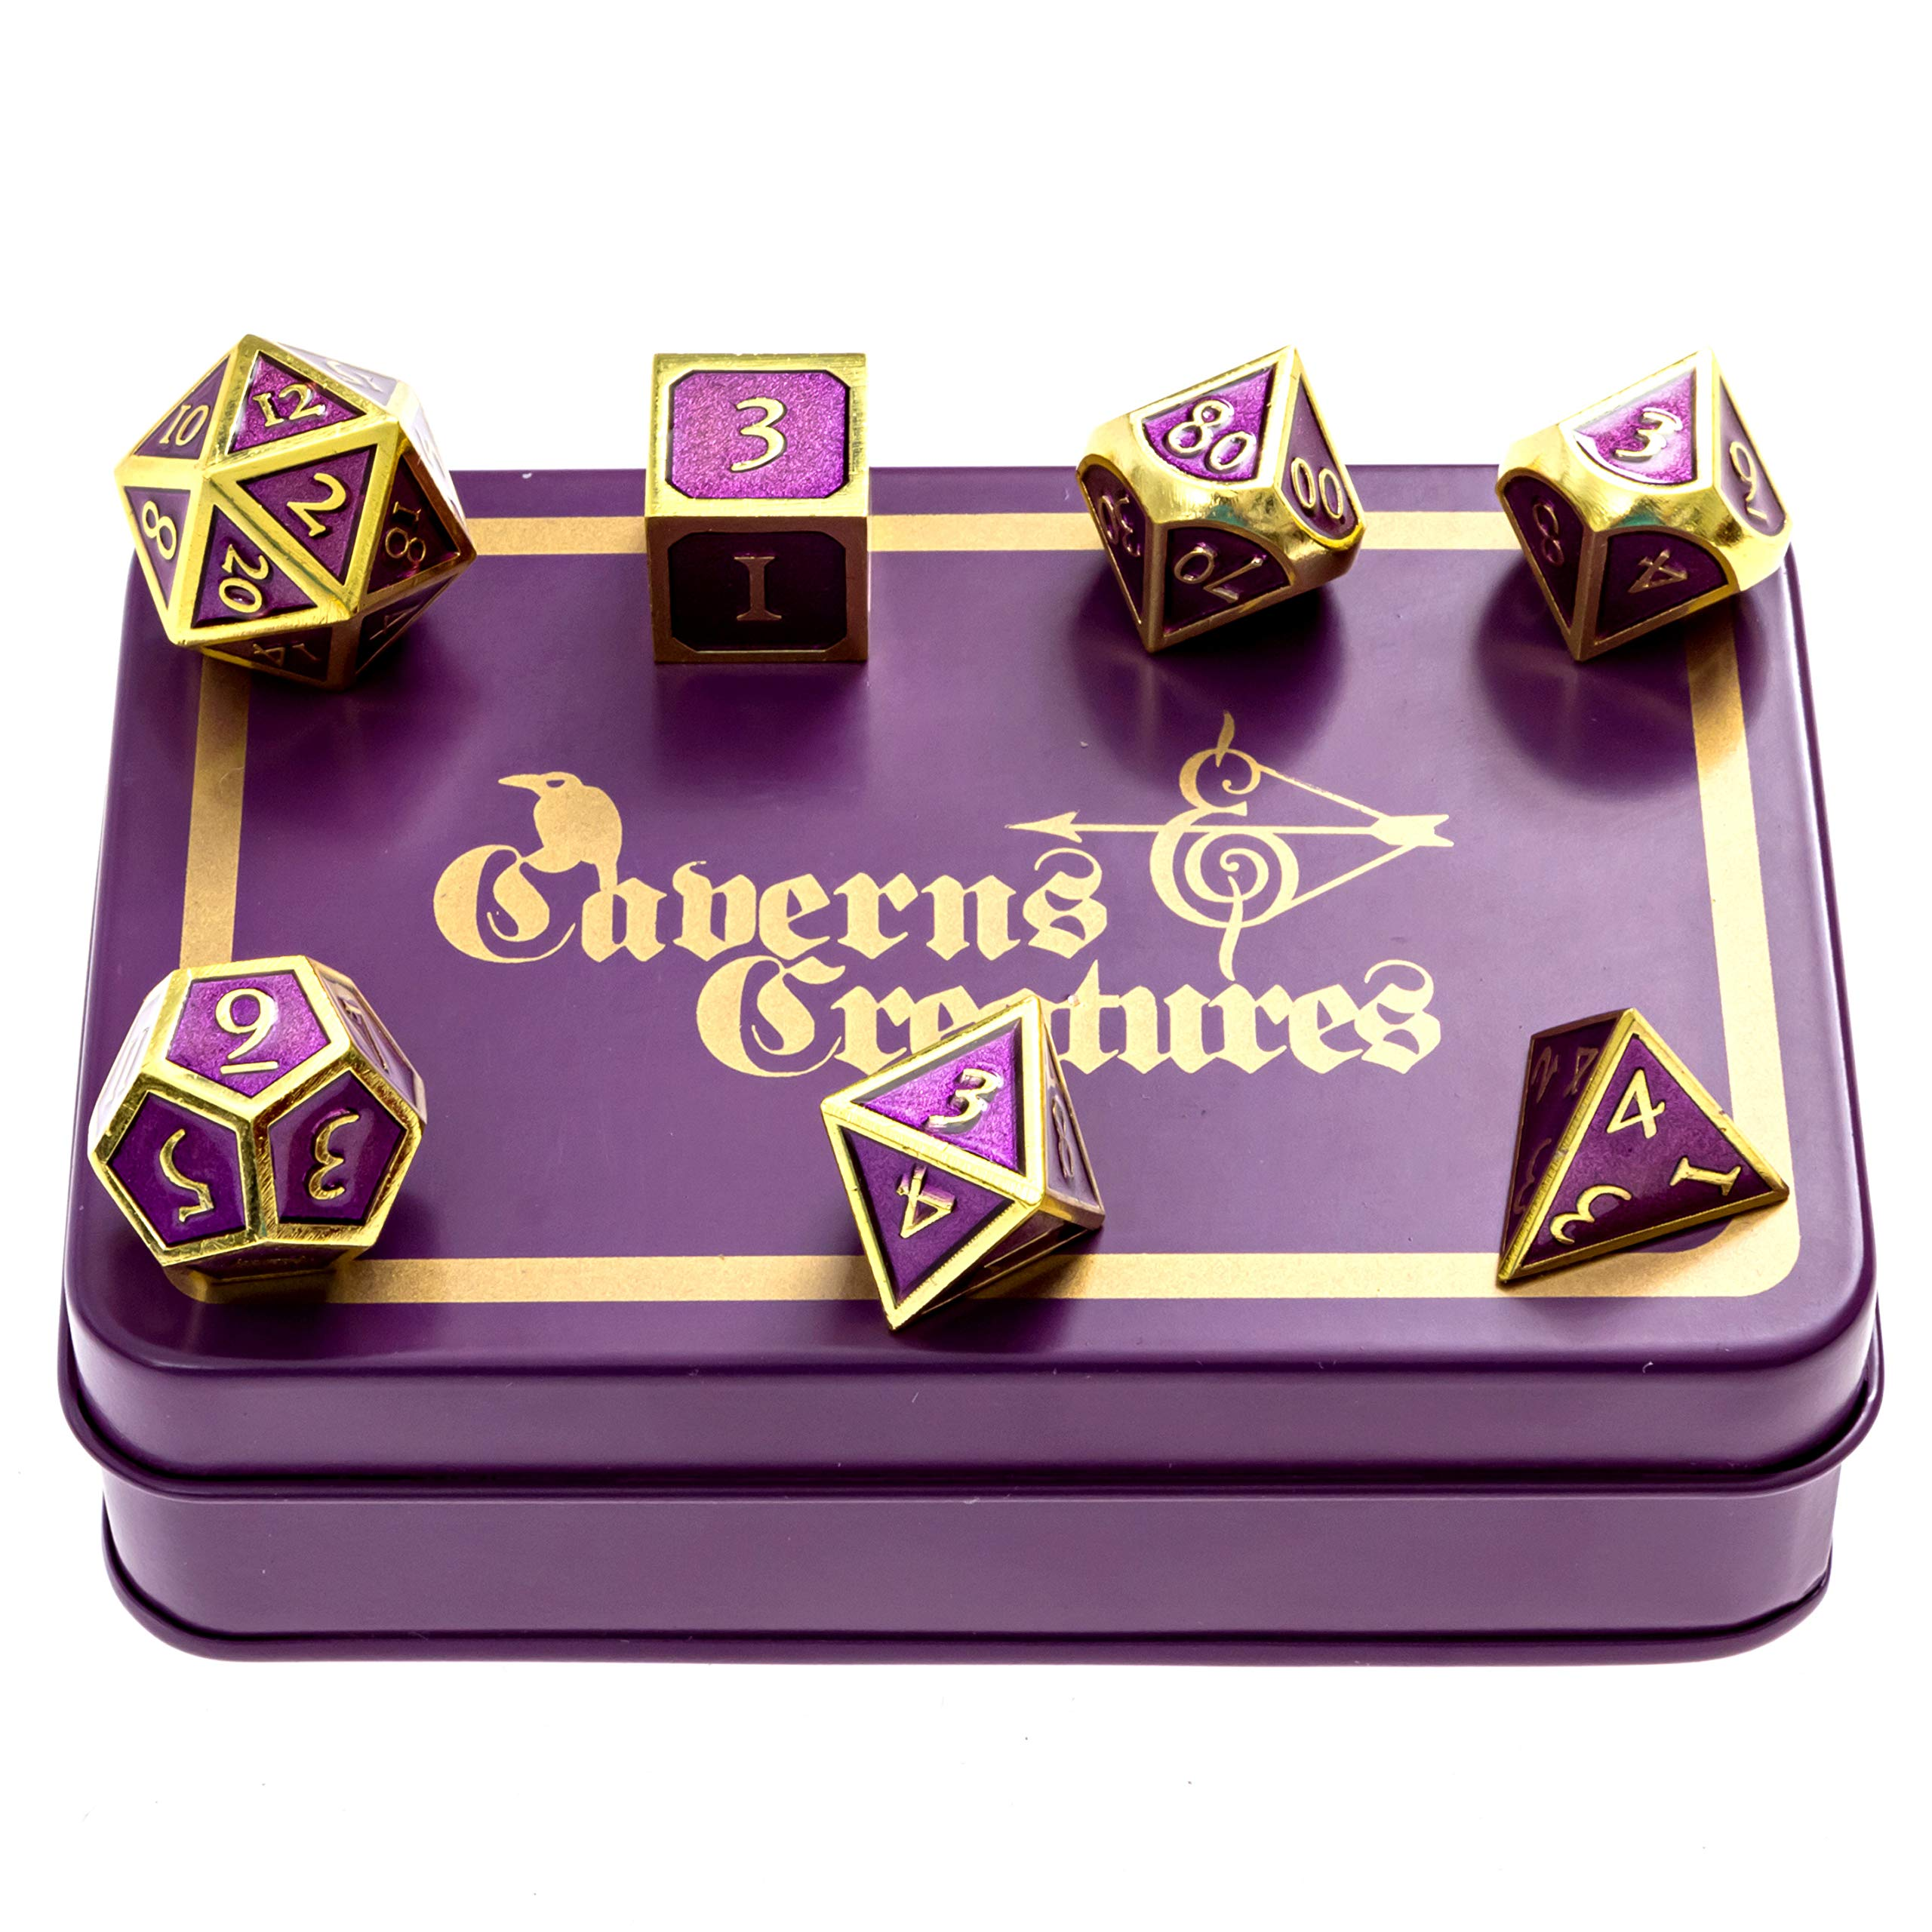 Caverns & Creatures Pimp Dice: Purple Metal RPG Dice with Gold Numbers in Stylish Tin Display Case